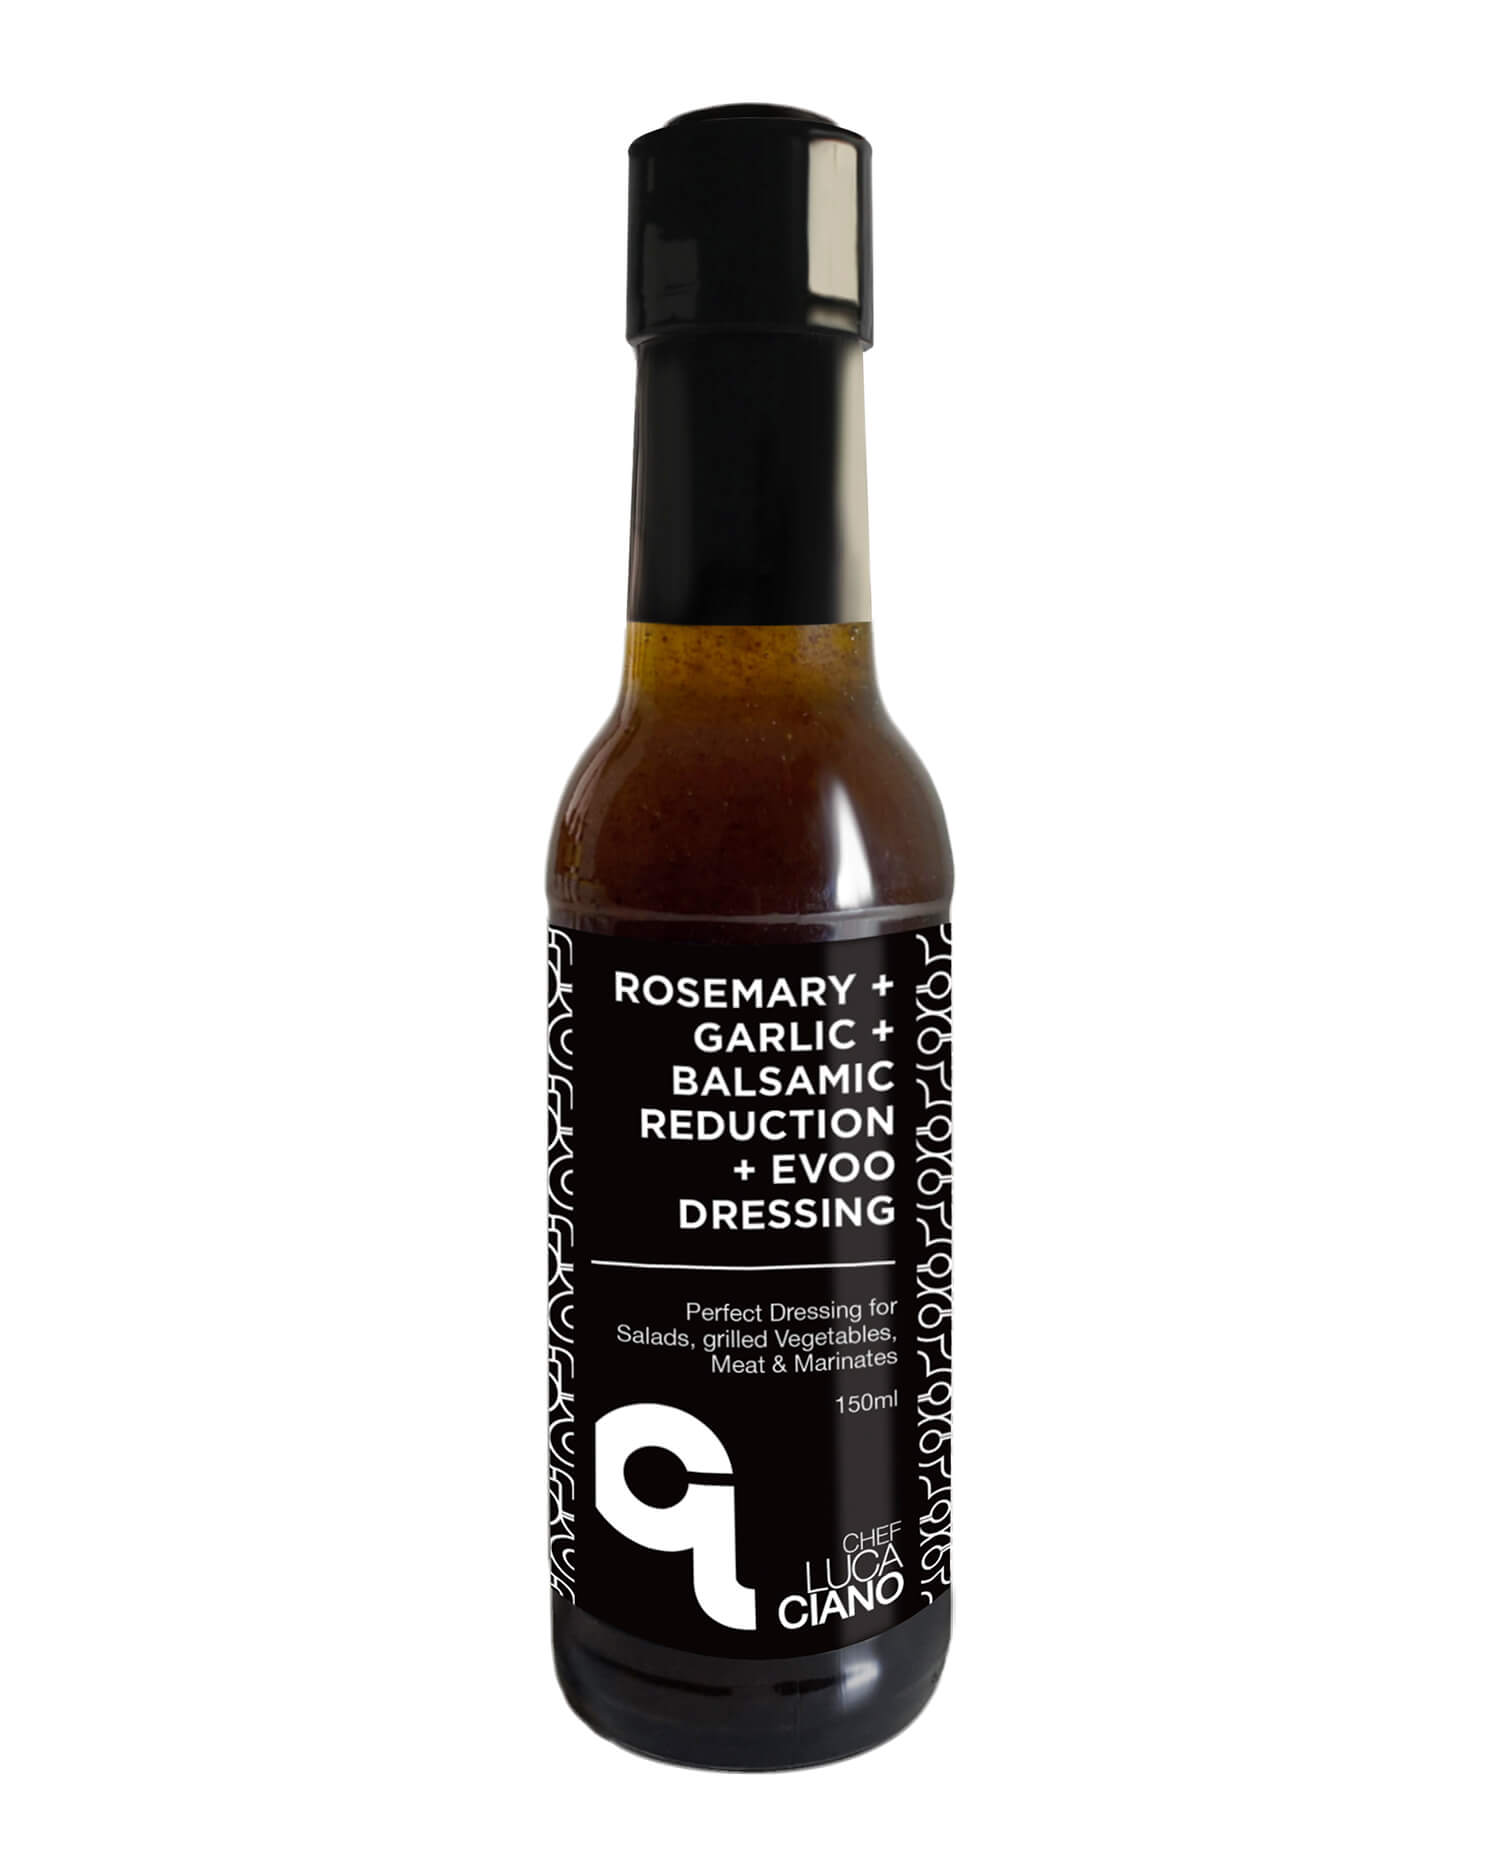 150ml Bottle of Chef Luca Ciano's Rosmery Garlic Balsamic Reduction Evoo Salad Drressing